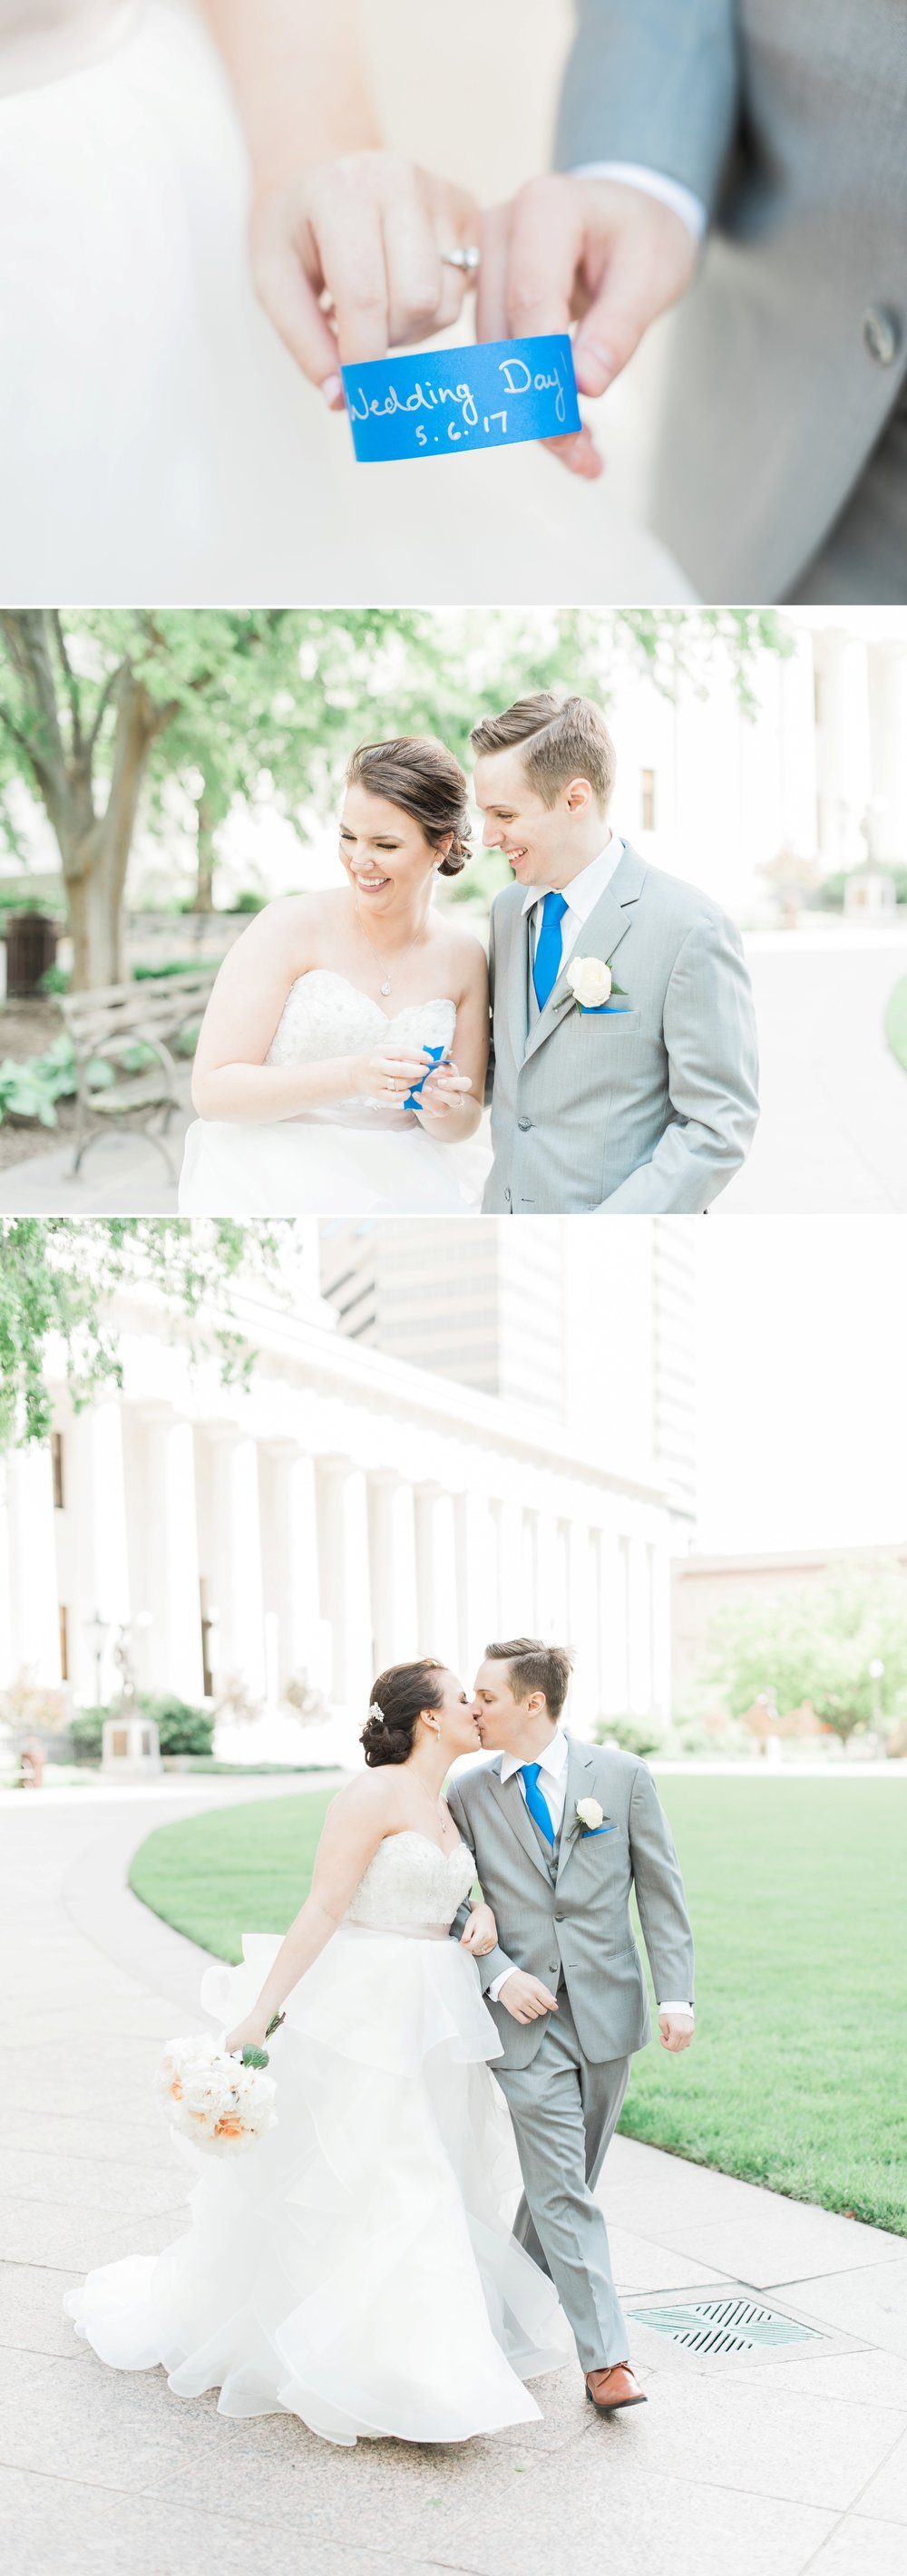 the-vault-columbus-ohio-wedding-emily-chris_0030.jpg